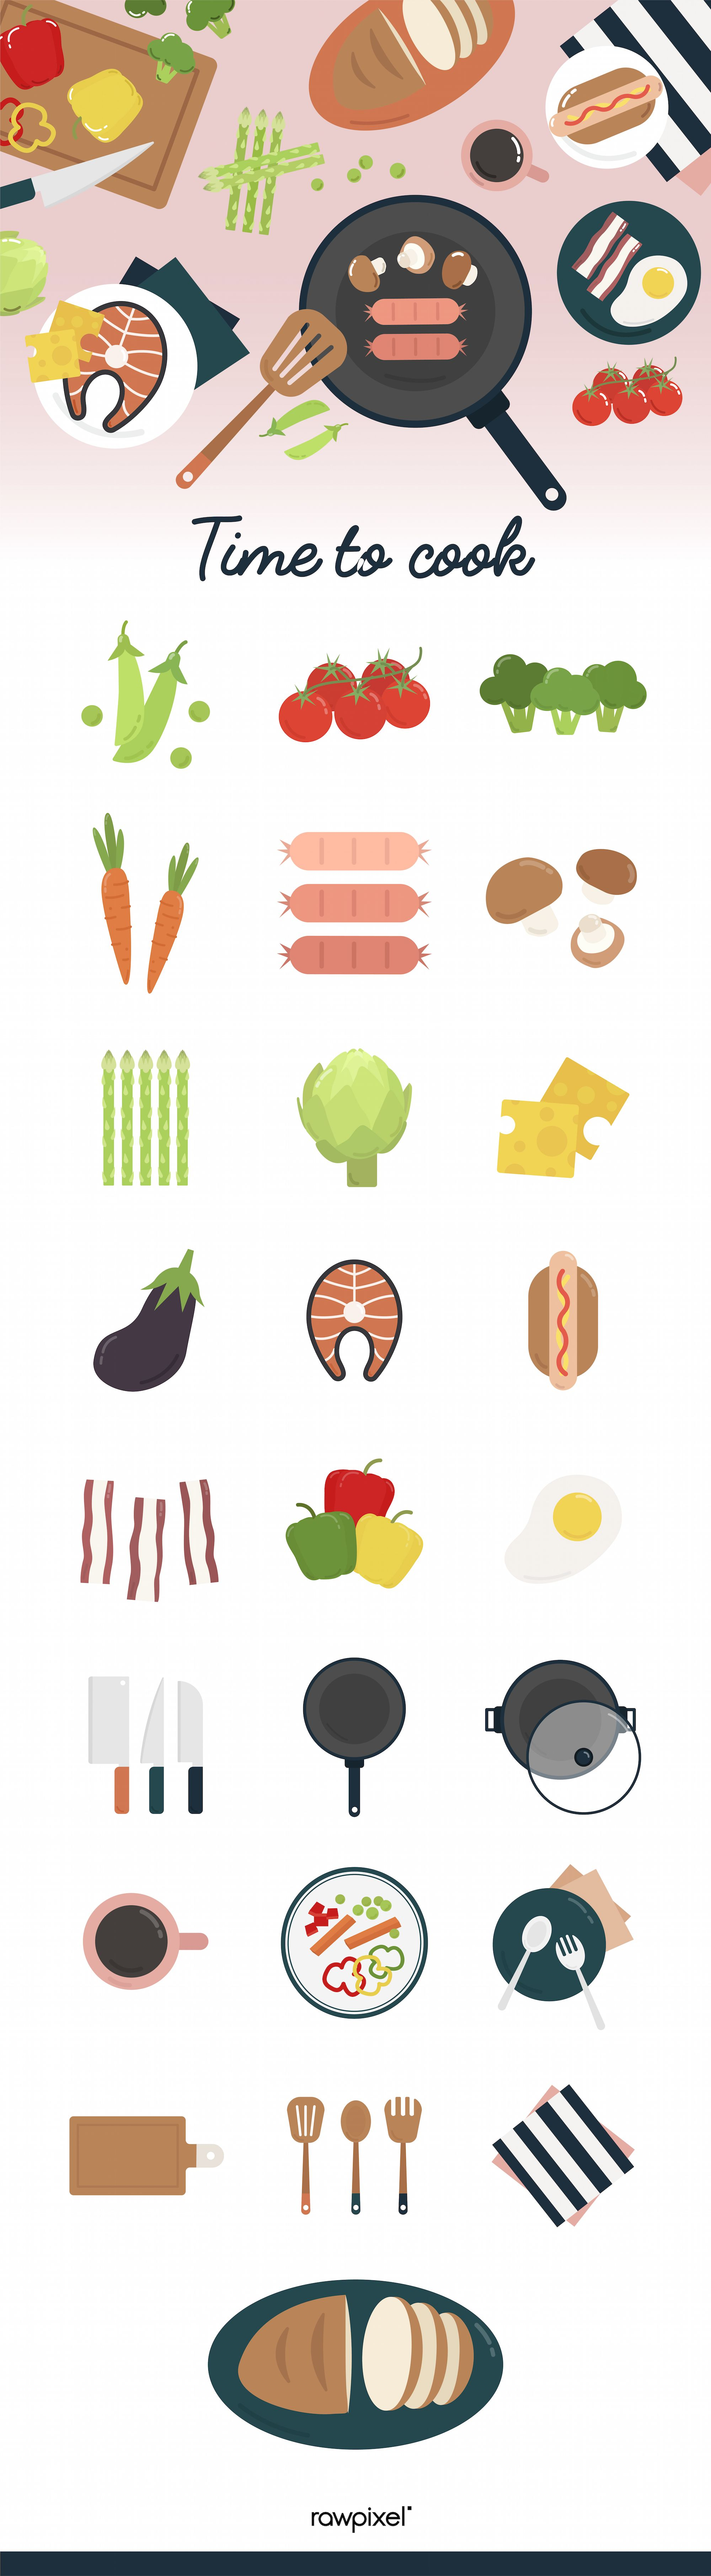 Download food vectors and many other amazing